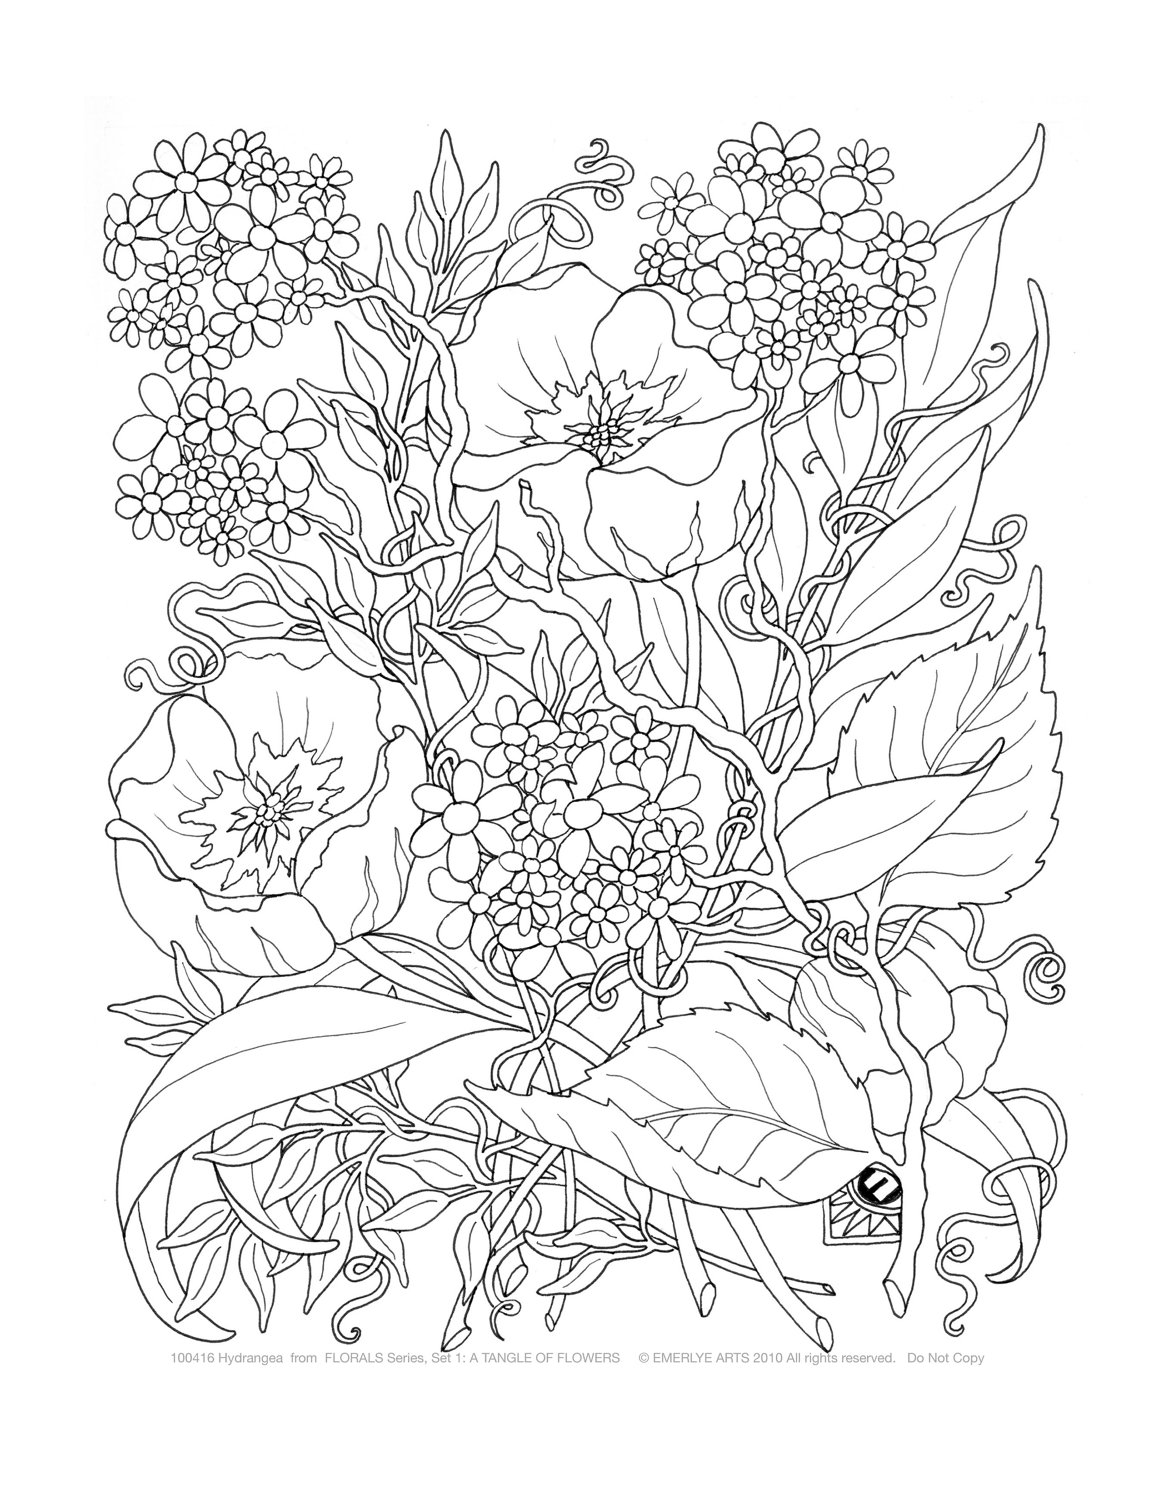 Hydrangea Flower Drawing at GetDrawings.com | Free for personal use ...